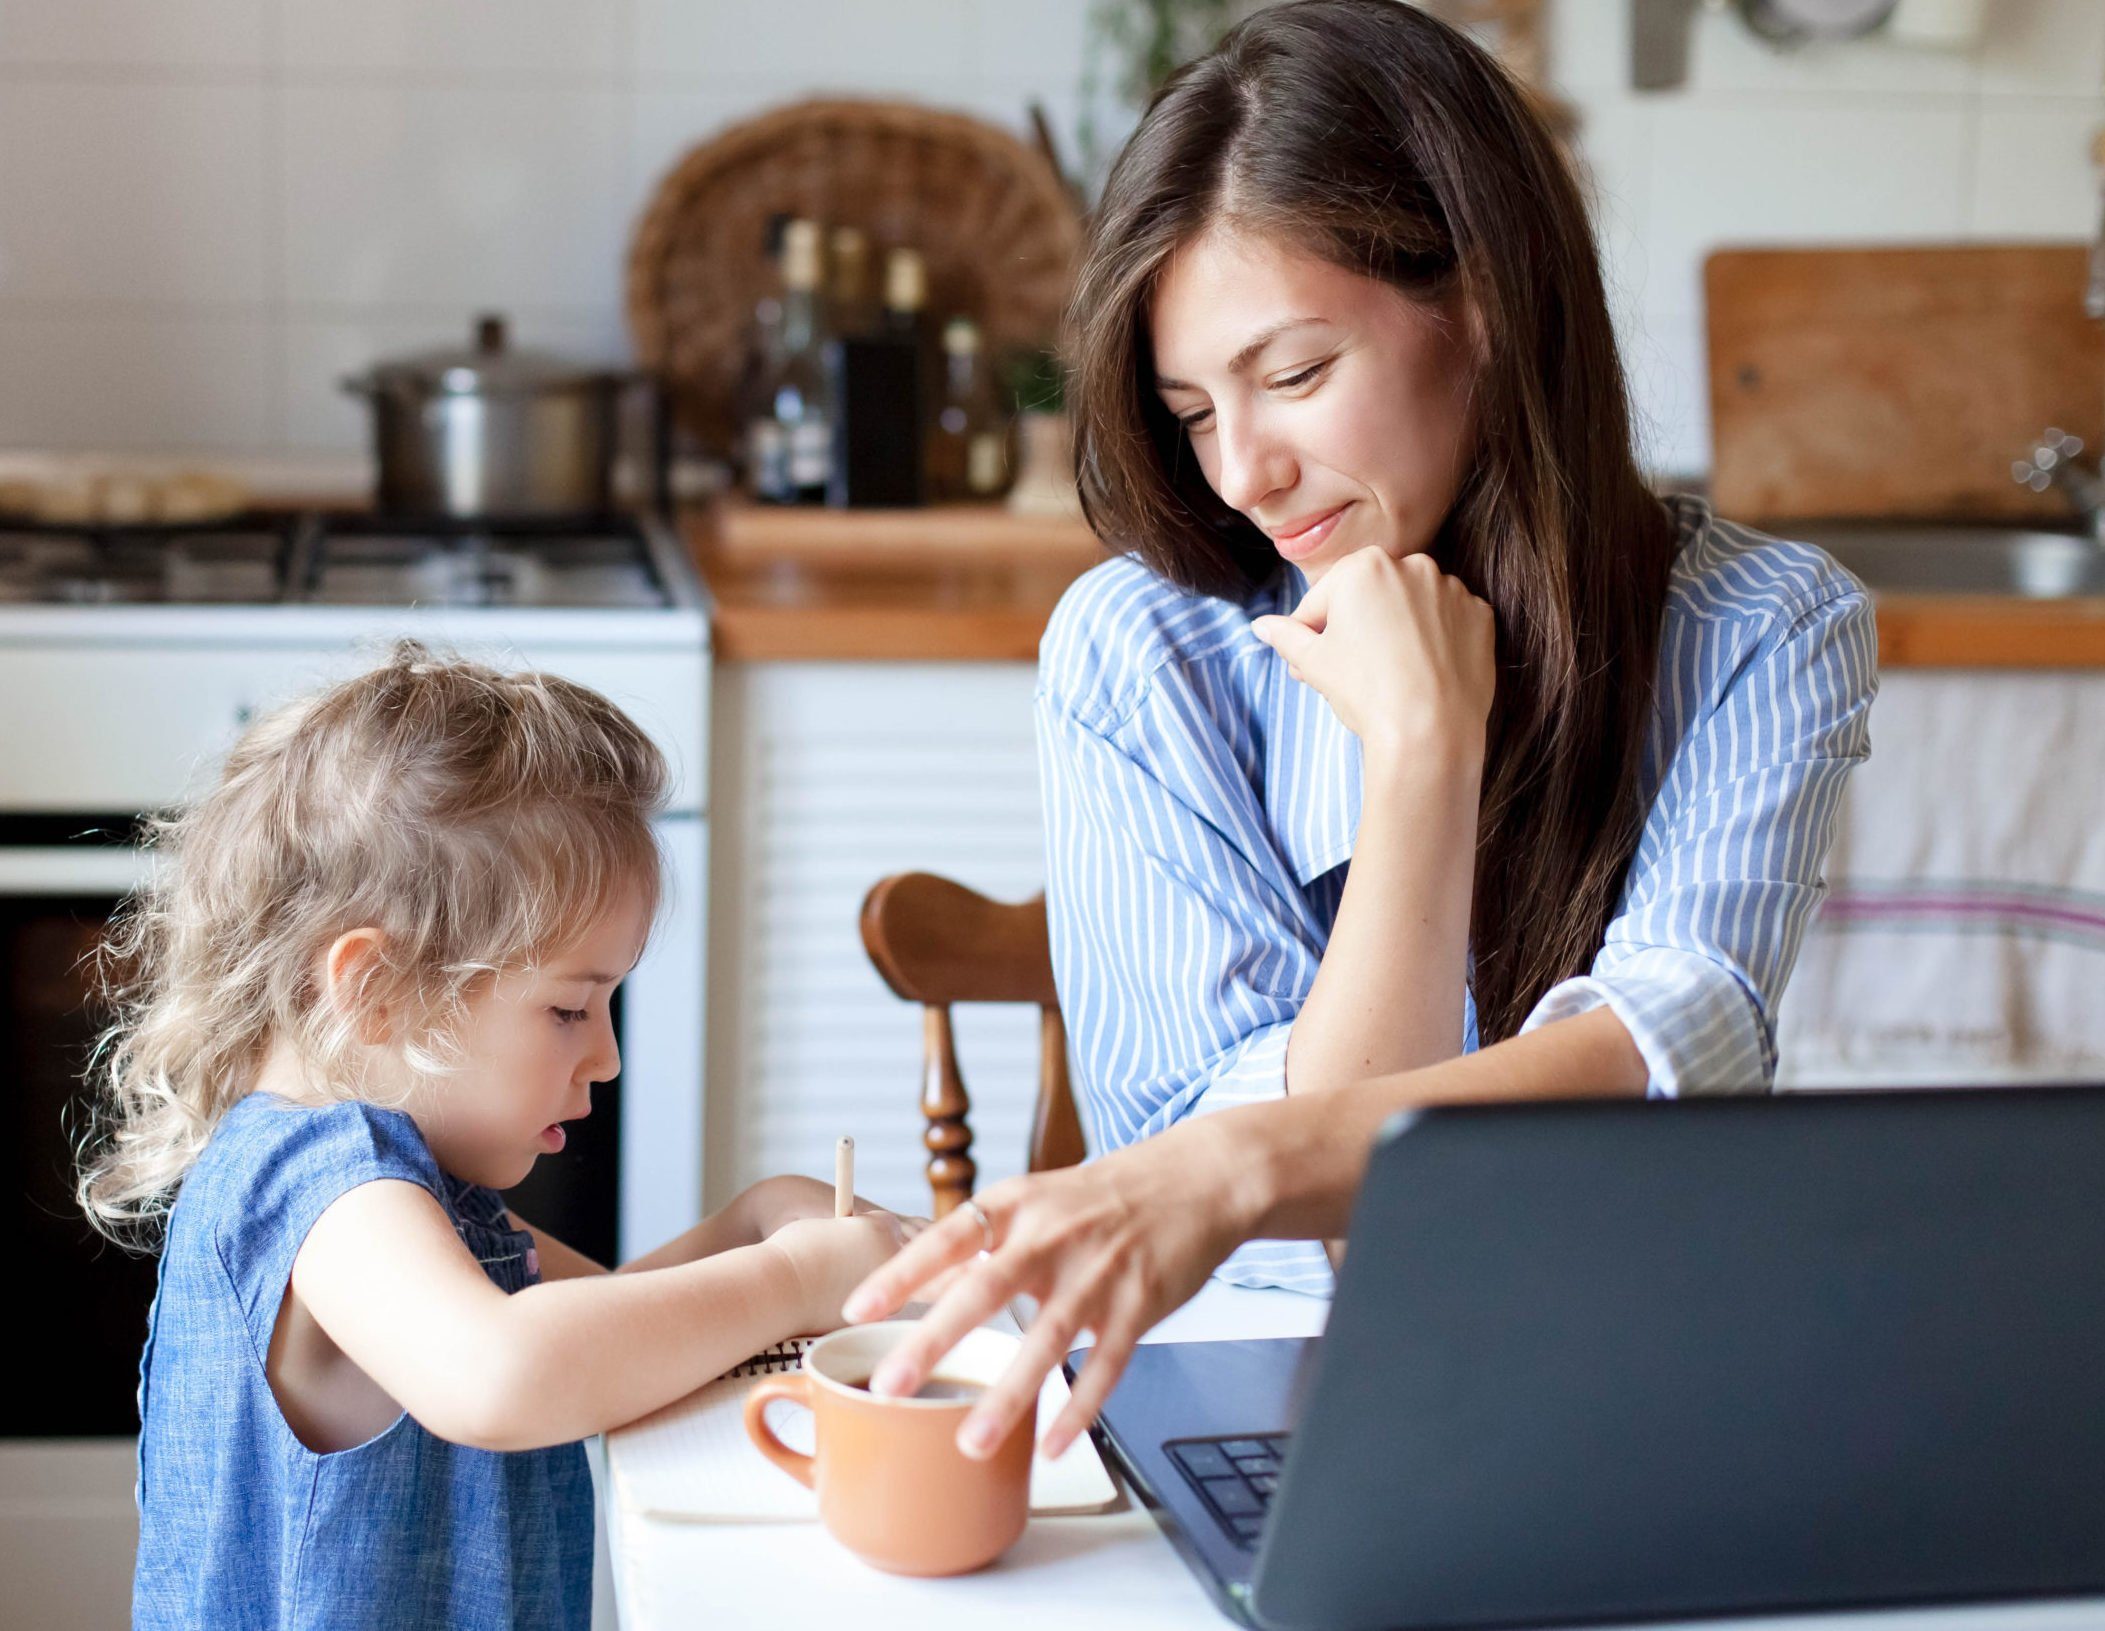 Mom working from home while playing with daughter